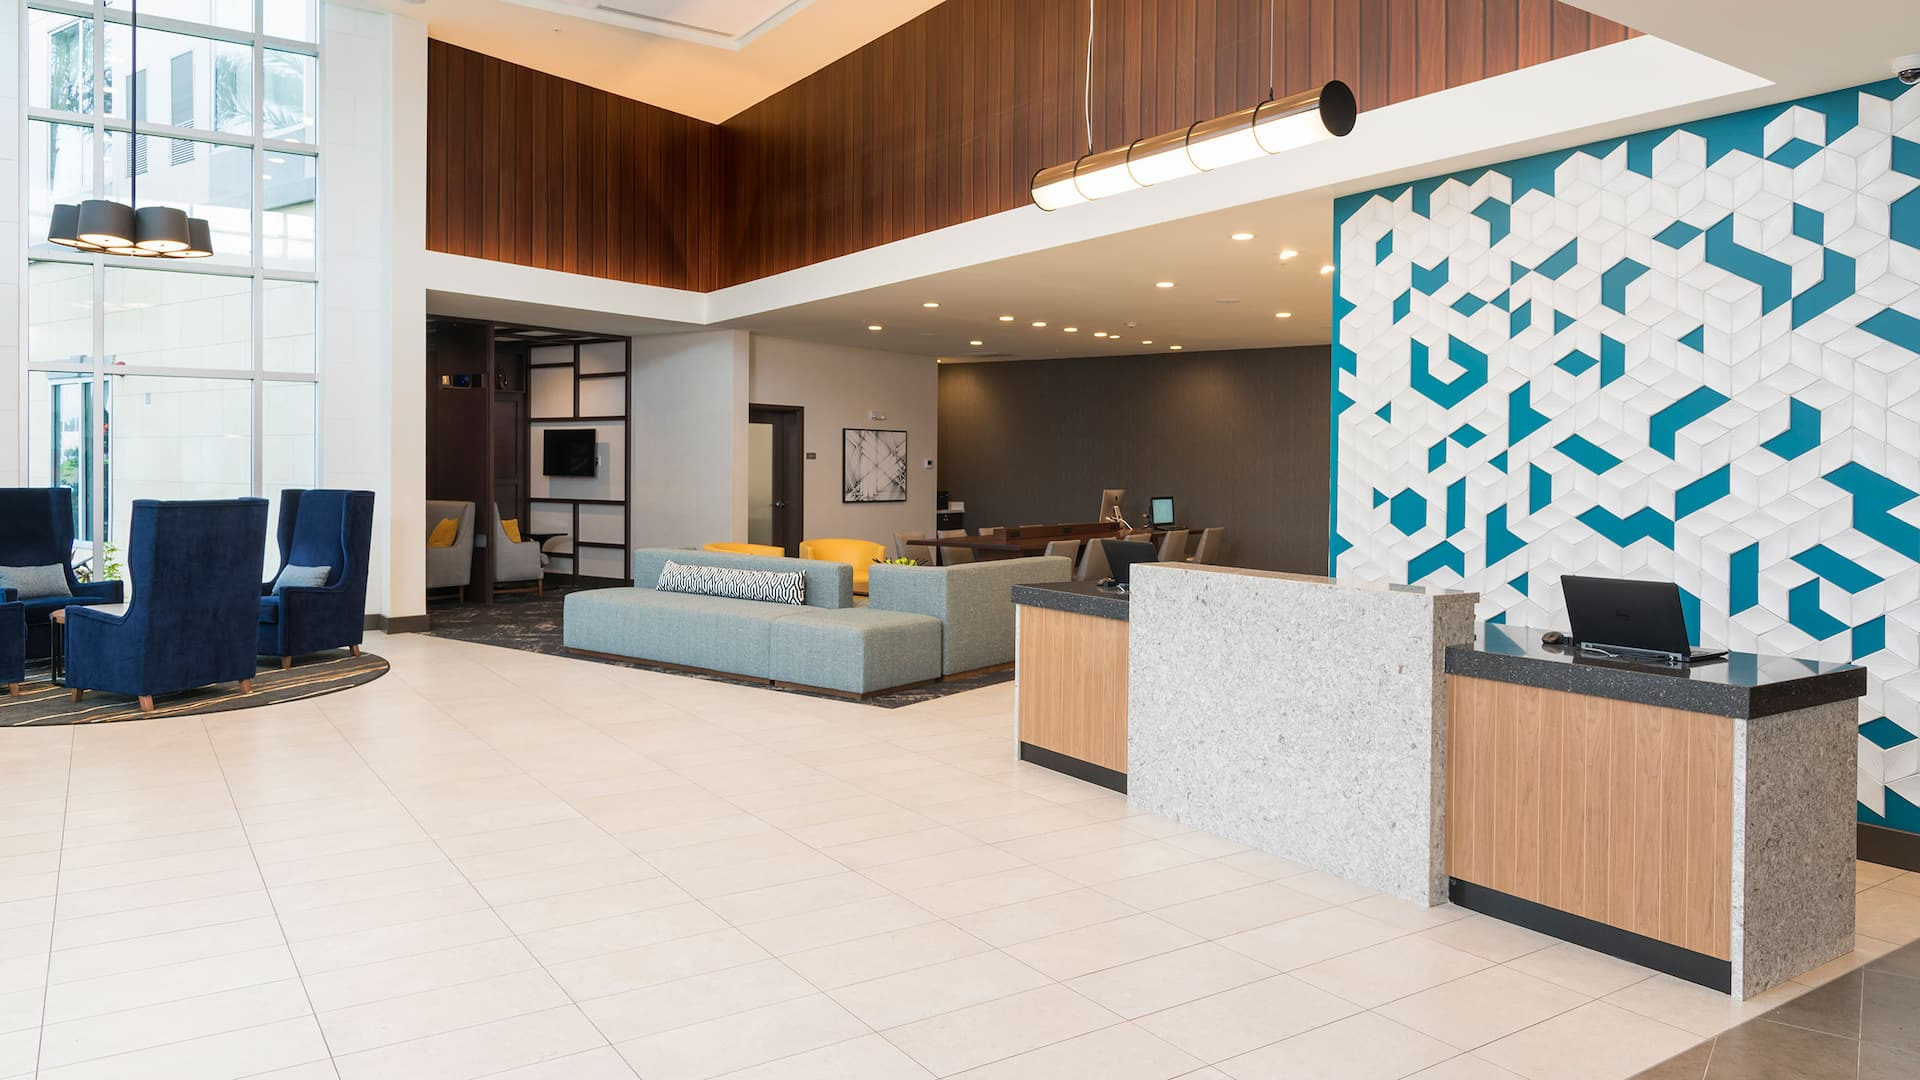 Hyatt Place Sarasota Lakewood Ranch Lobby